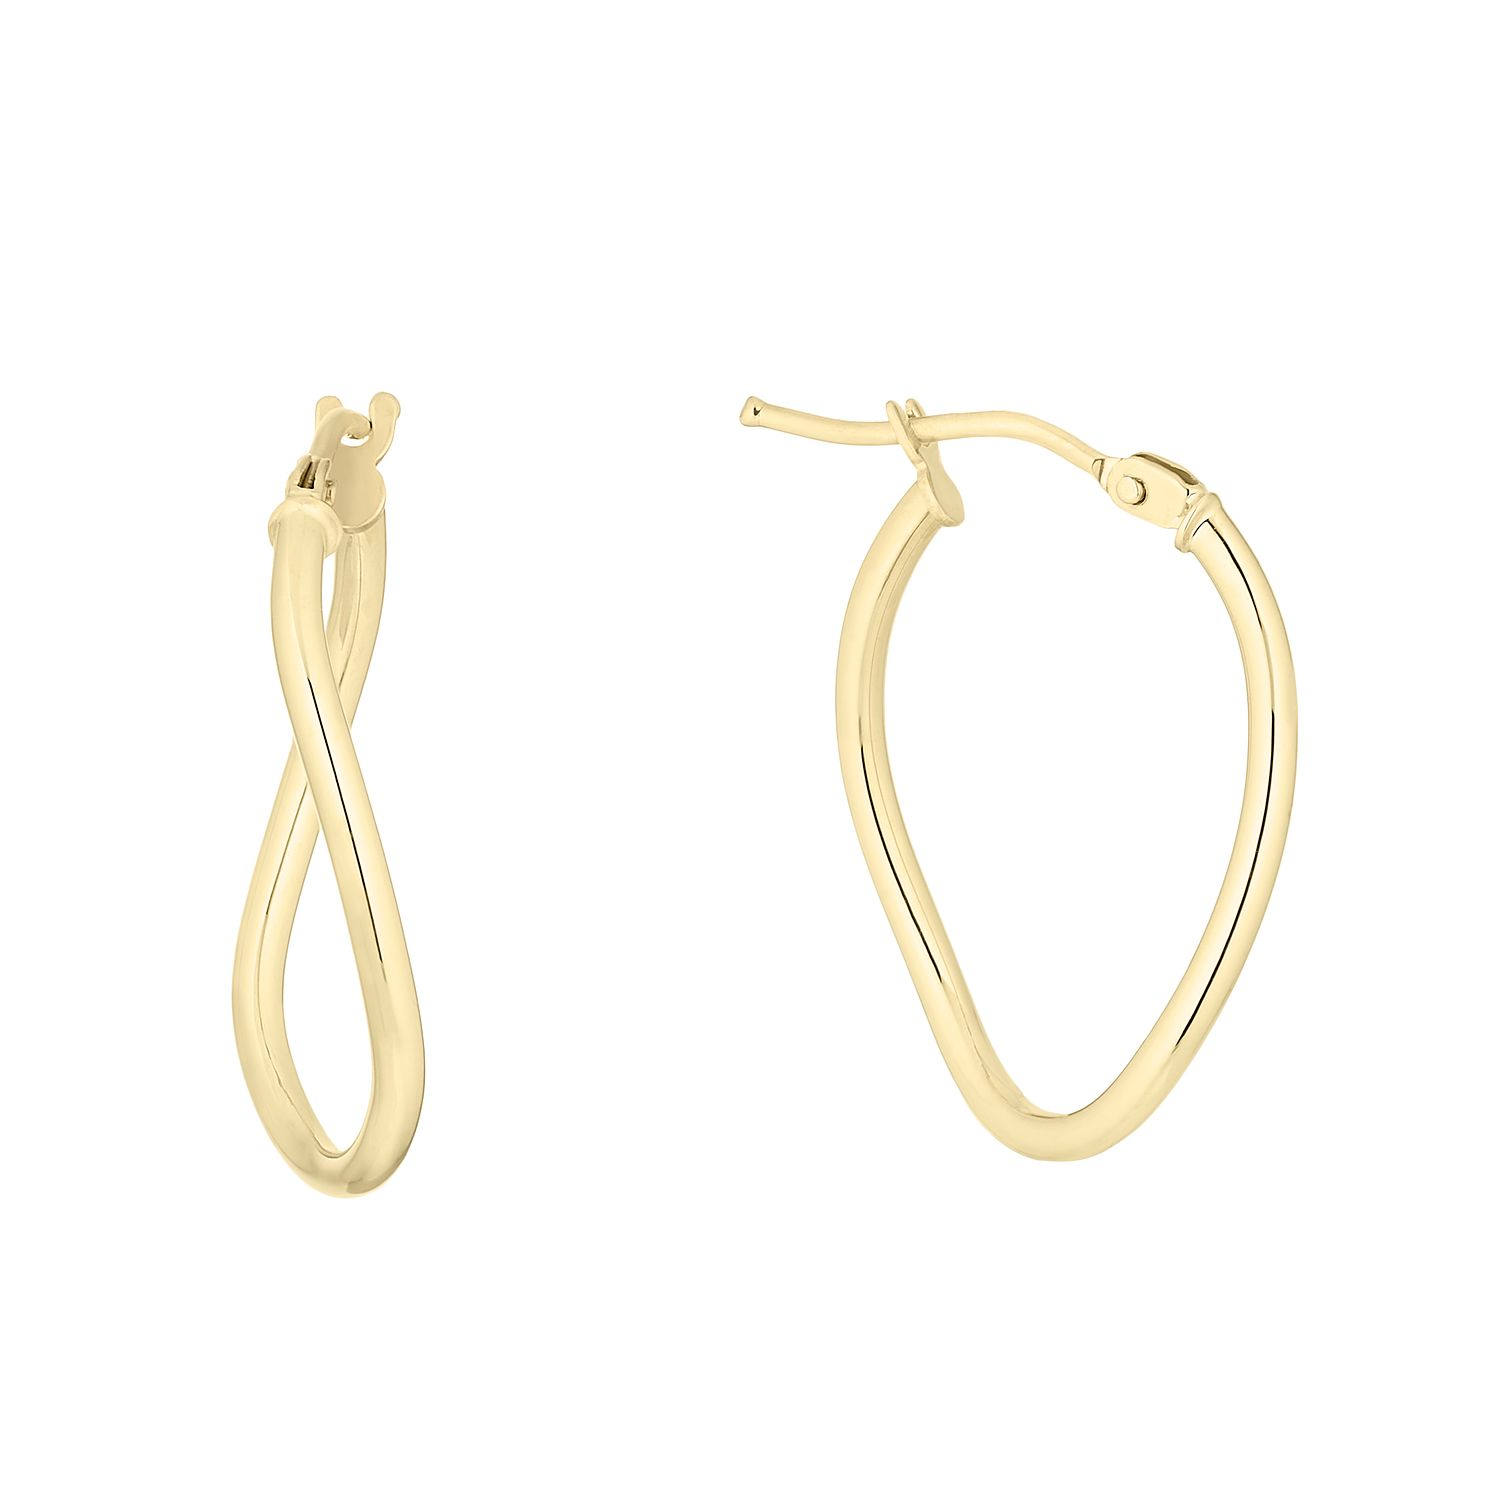 9ct Yellow Gold Oval Hoop Earrings - Product number 4668367